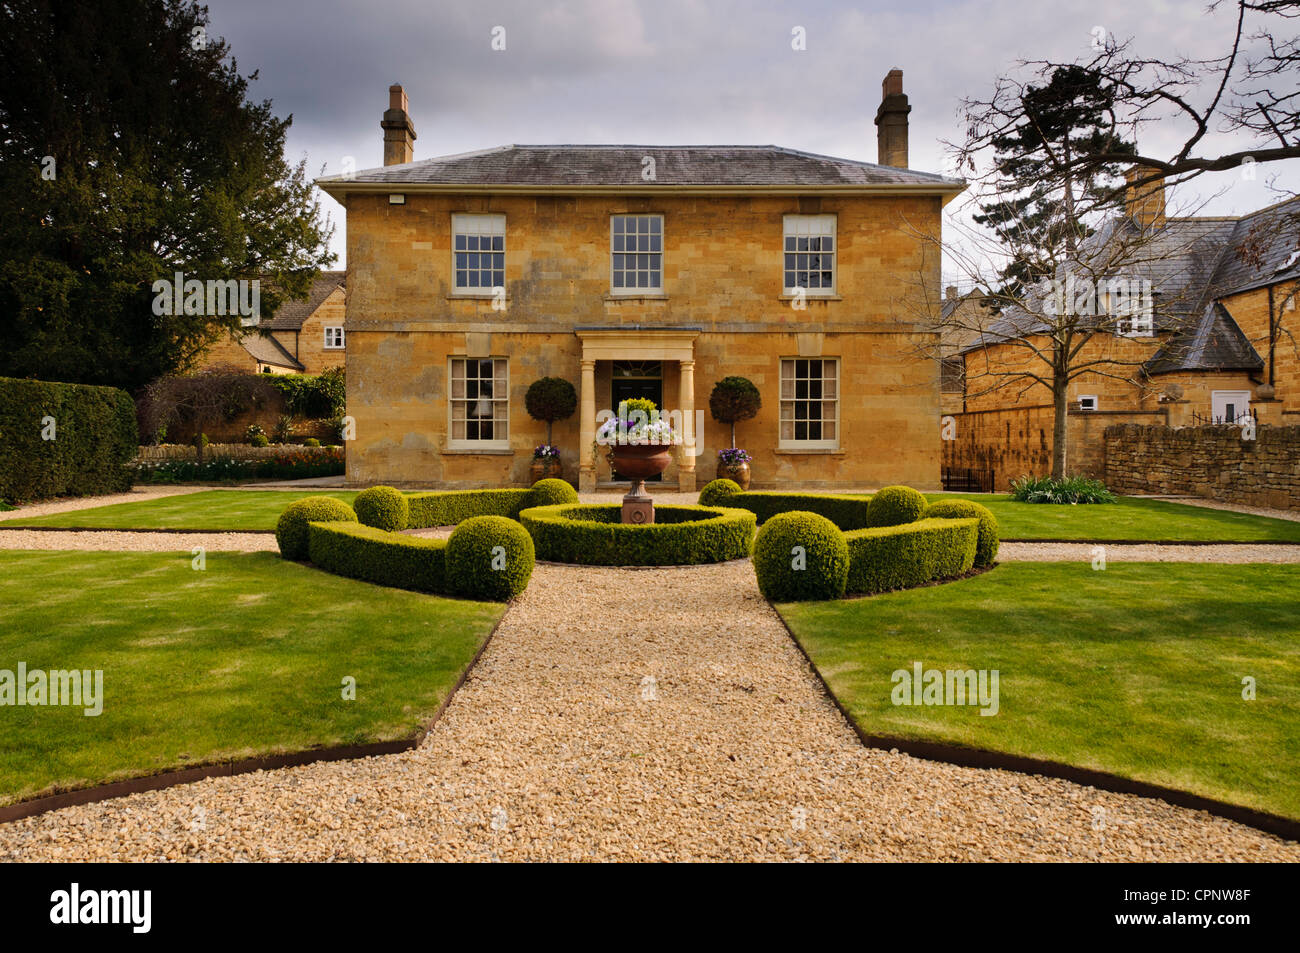 Perfectly symmetrical honey coloured Cotswold stone house and its